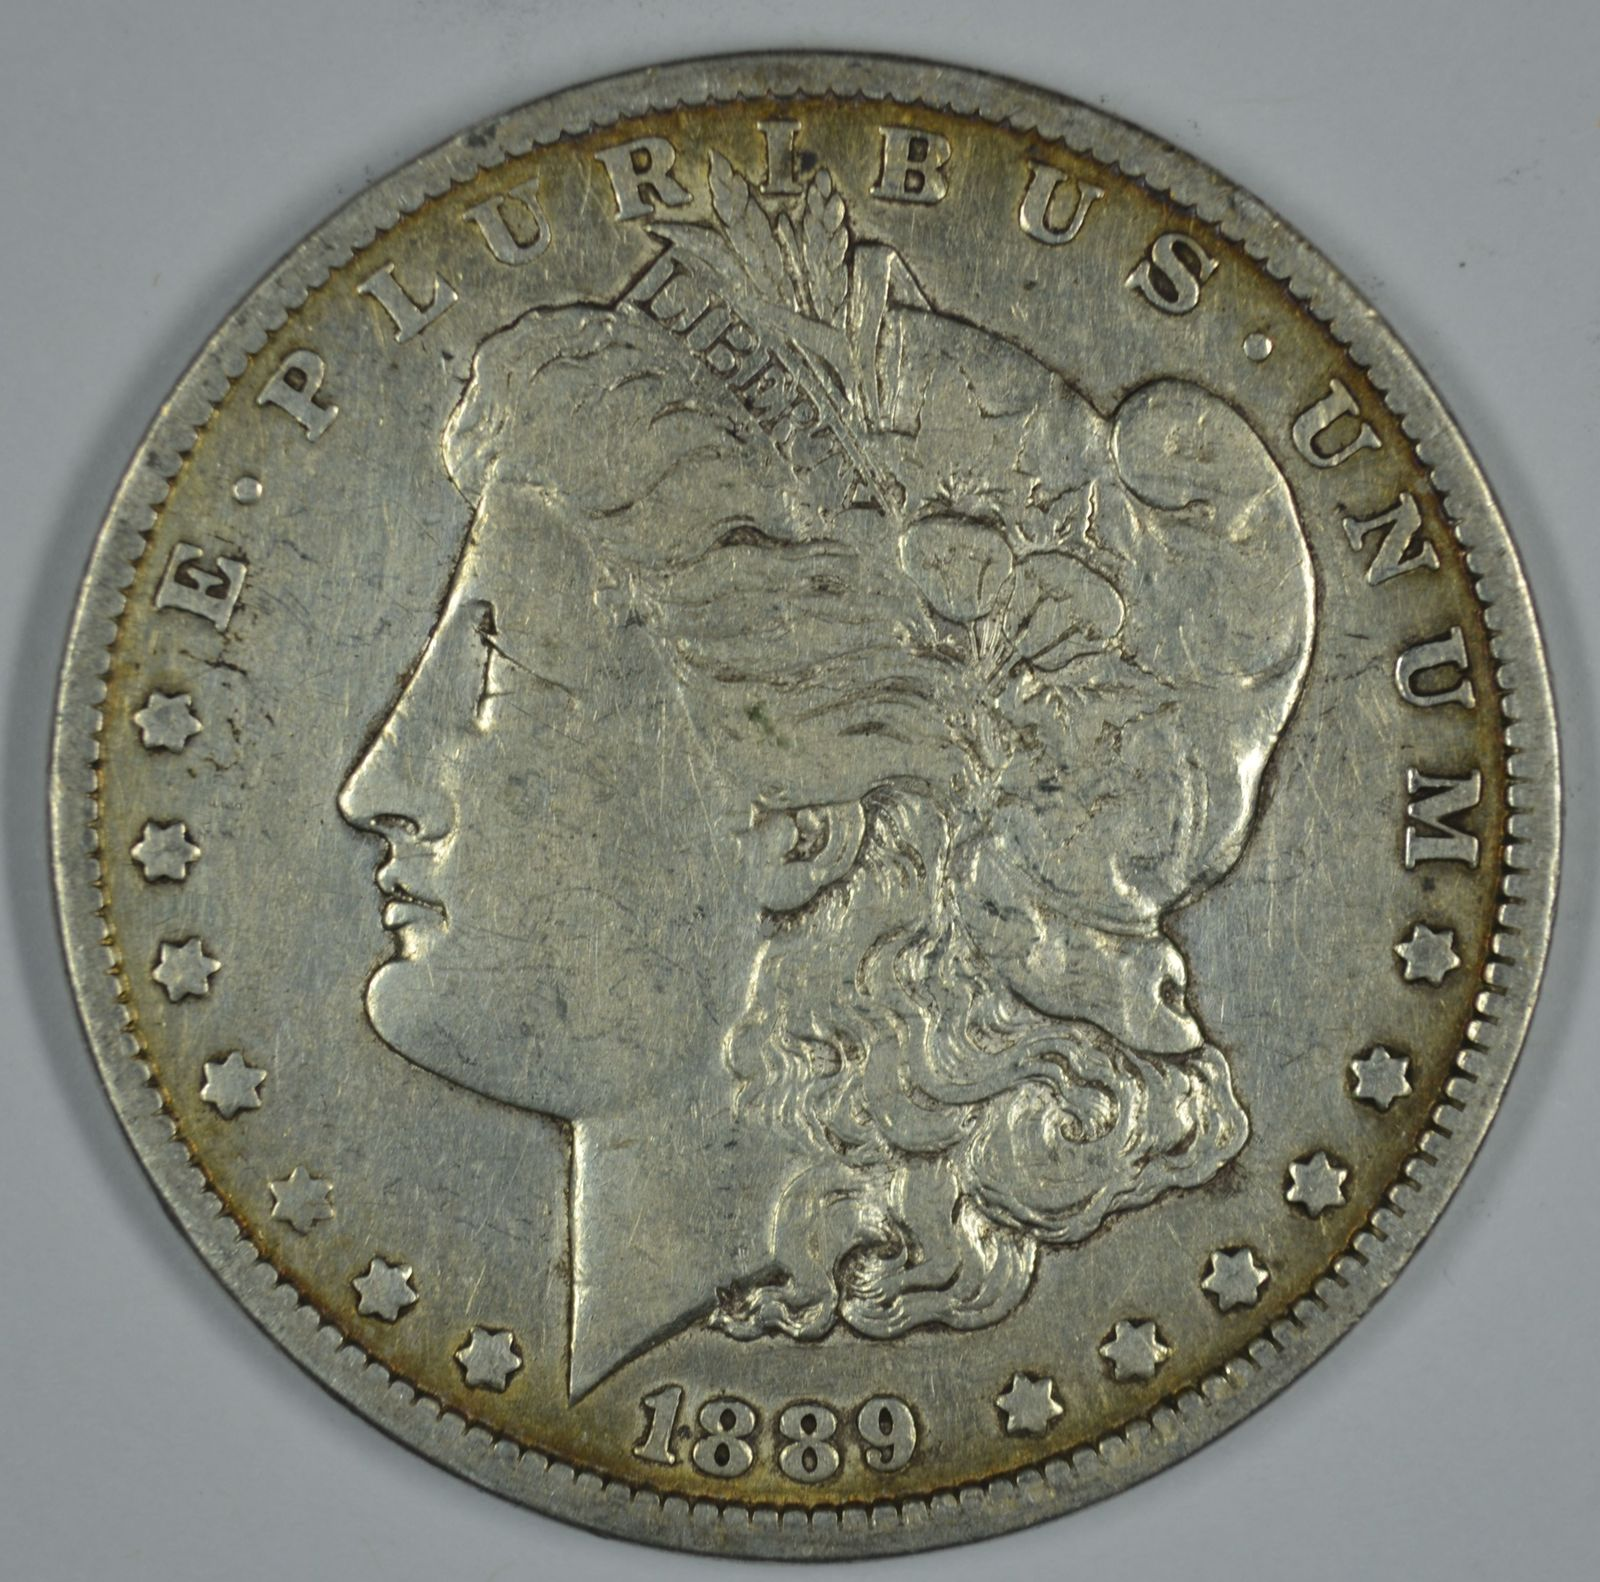 Primary image for 1889 O Morgan circulated silver dollar F details